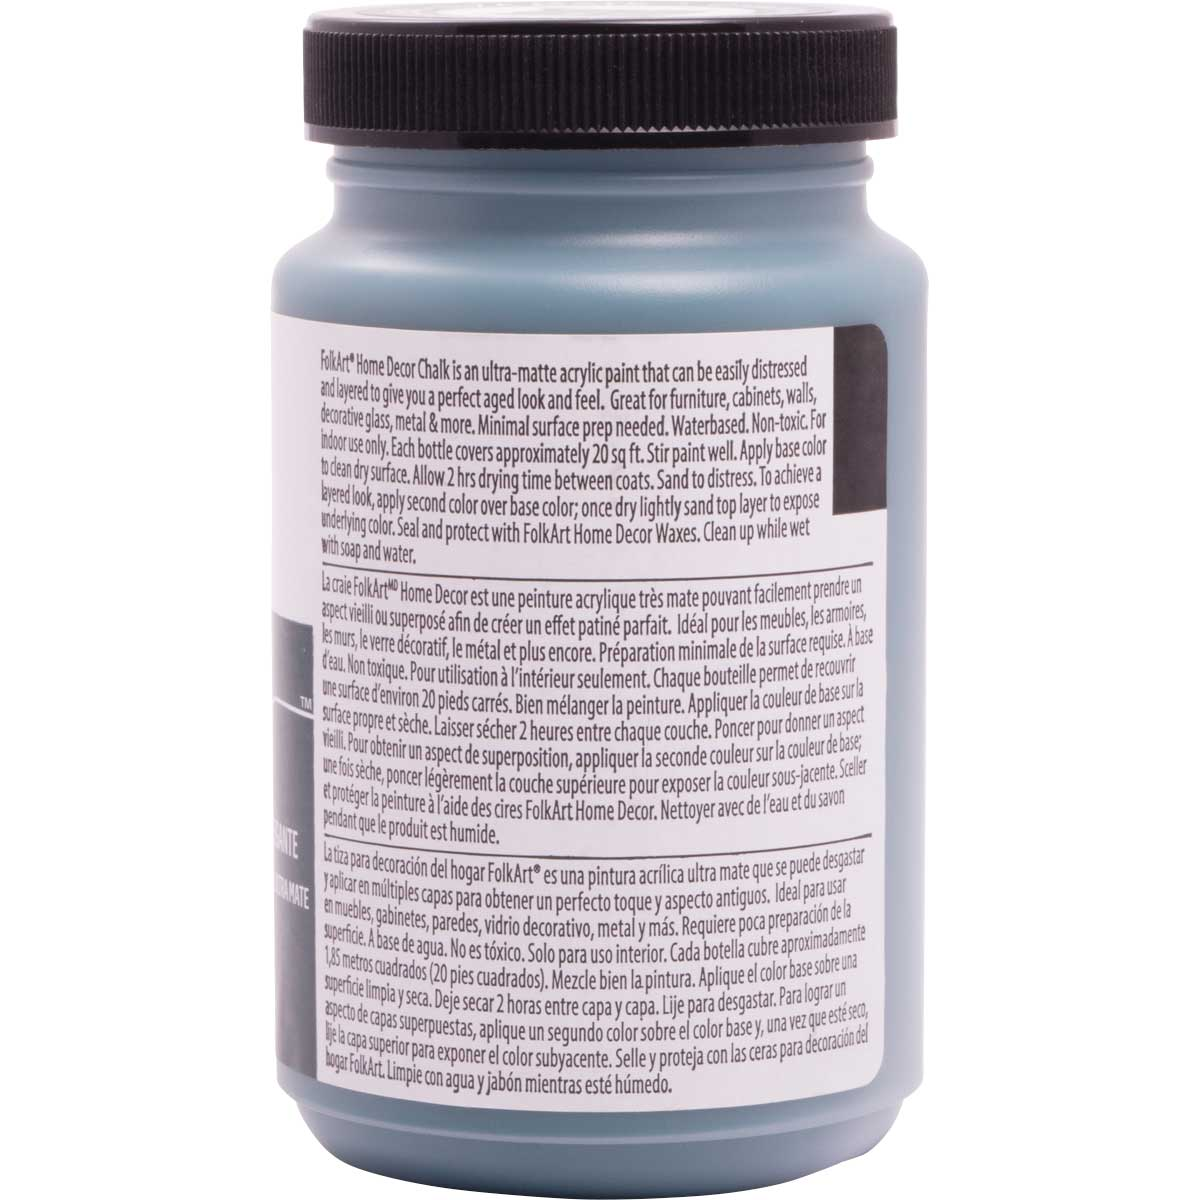 FolkArt ® Home Decor™  Chalk - Elegant Teal, 8 oz.